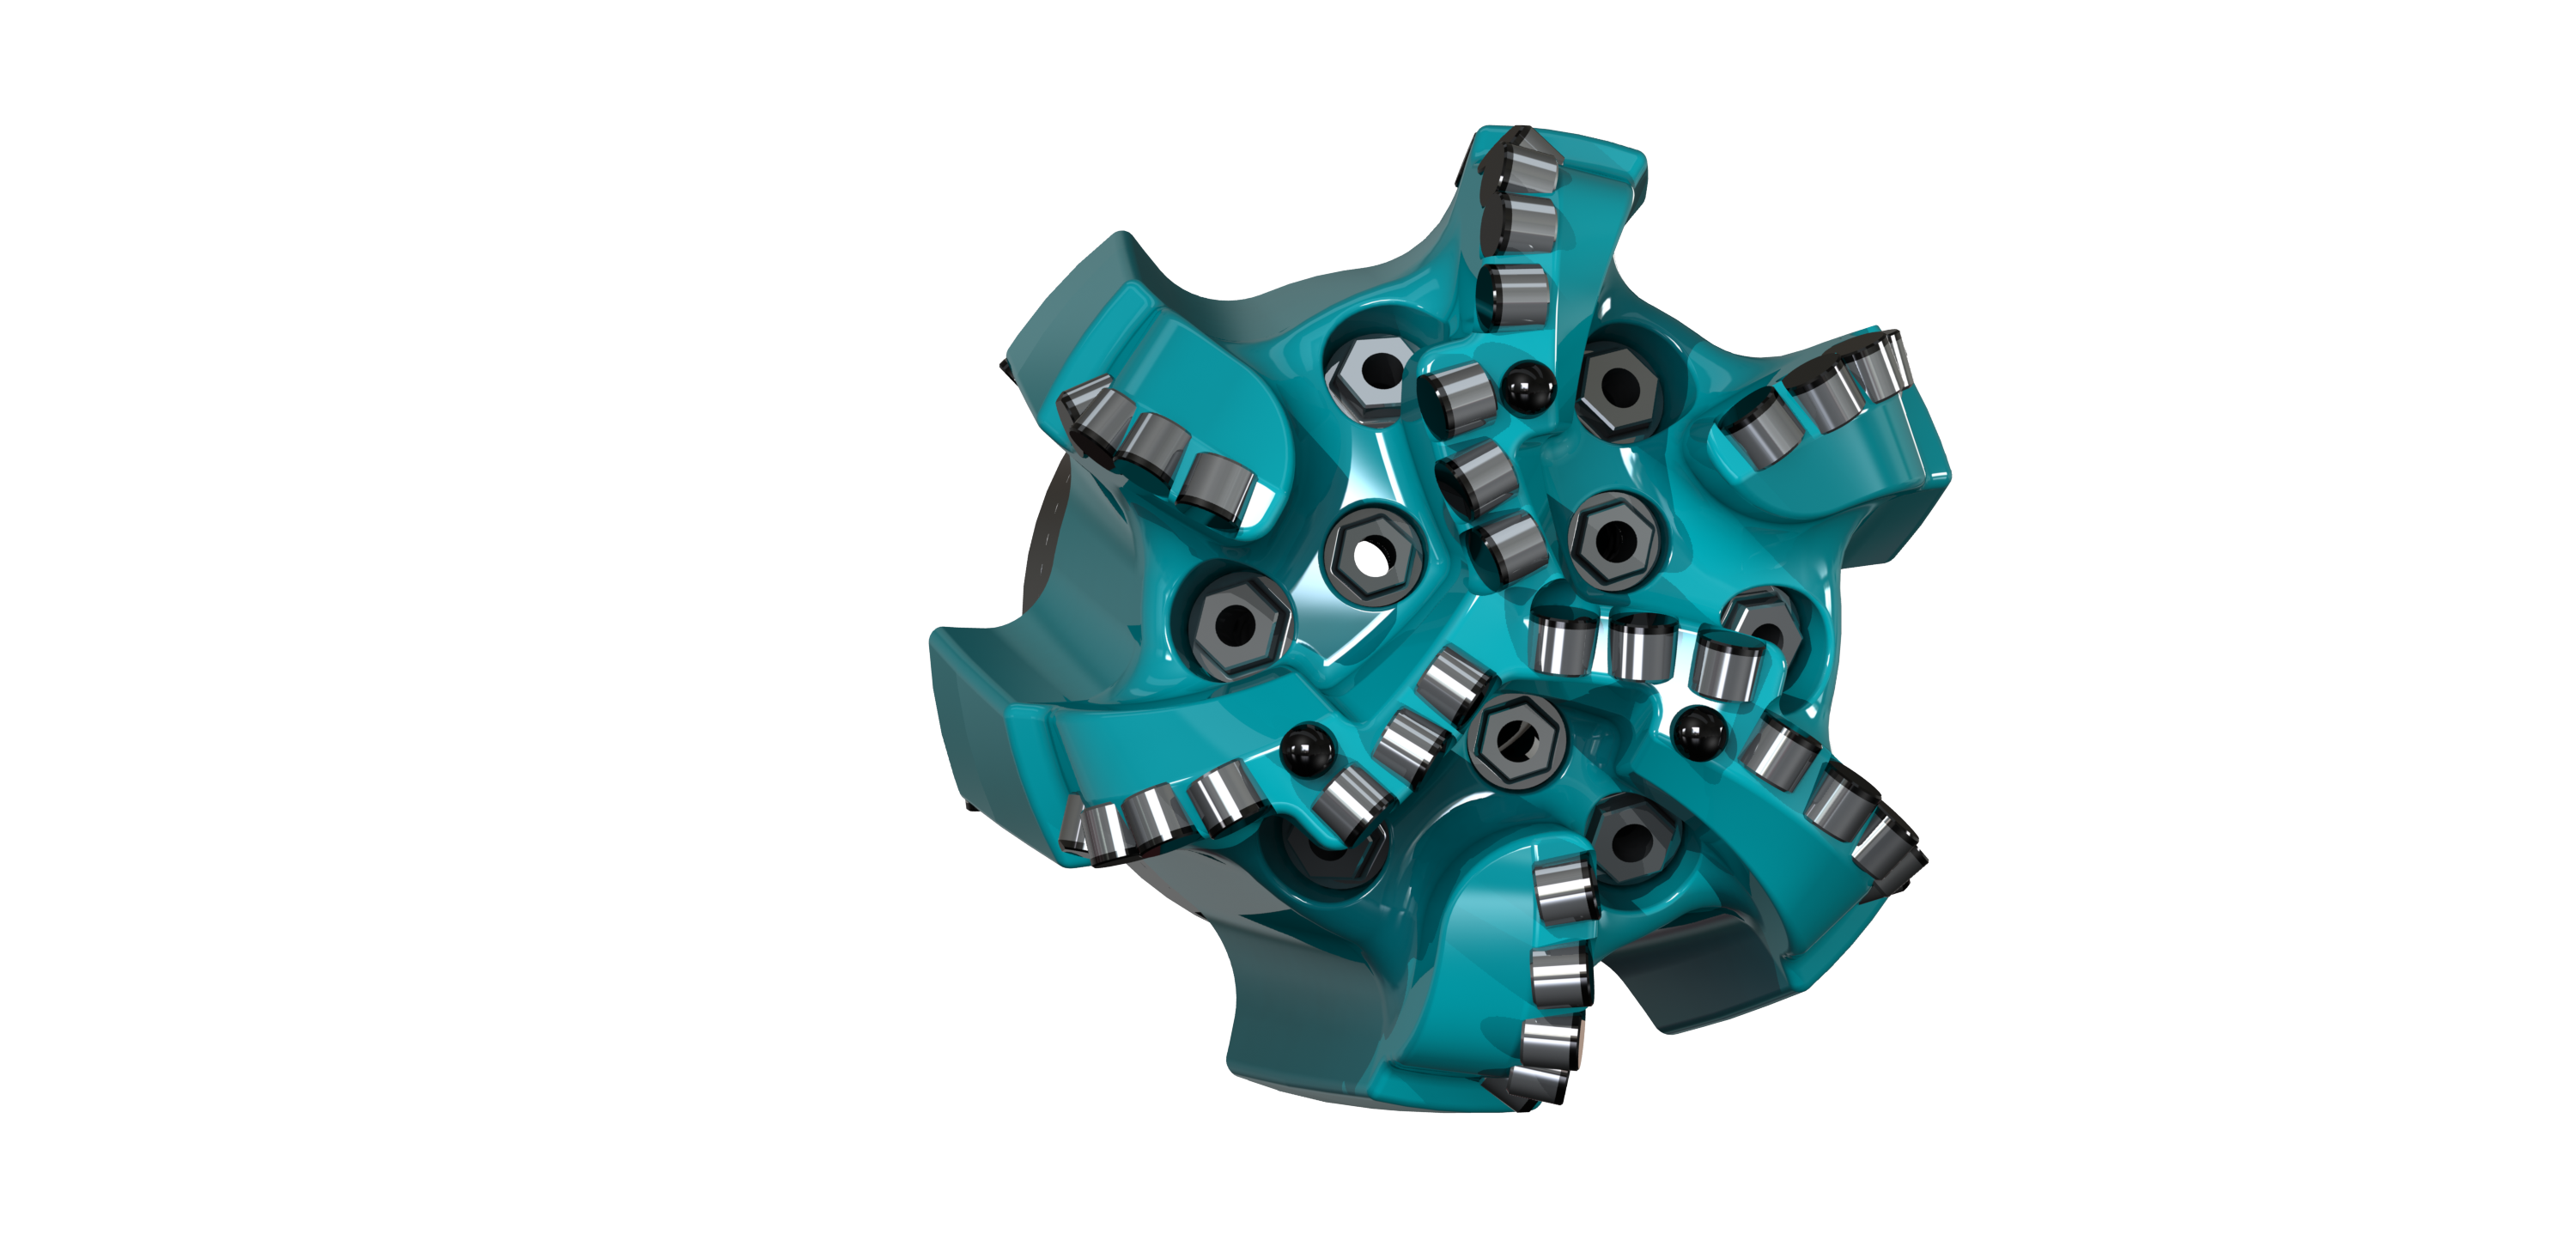 Ulterra's SplitBlade PDC drillbit with advanced hydraulics and layout is designed for maximum performance. (Source: Ulterra)